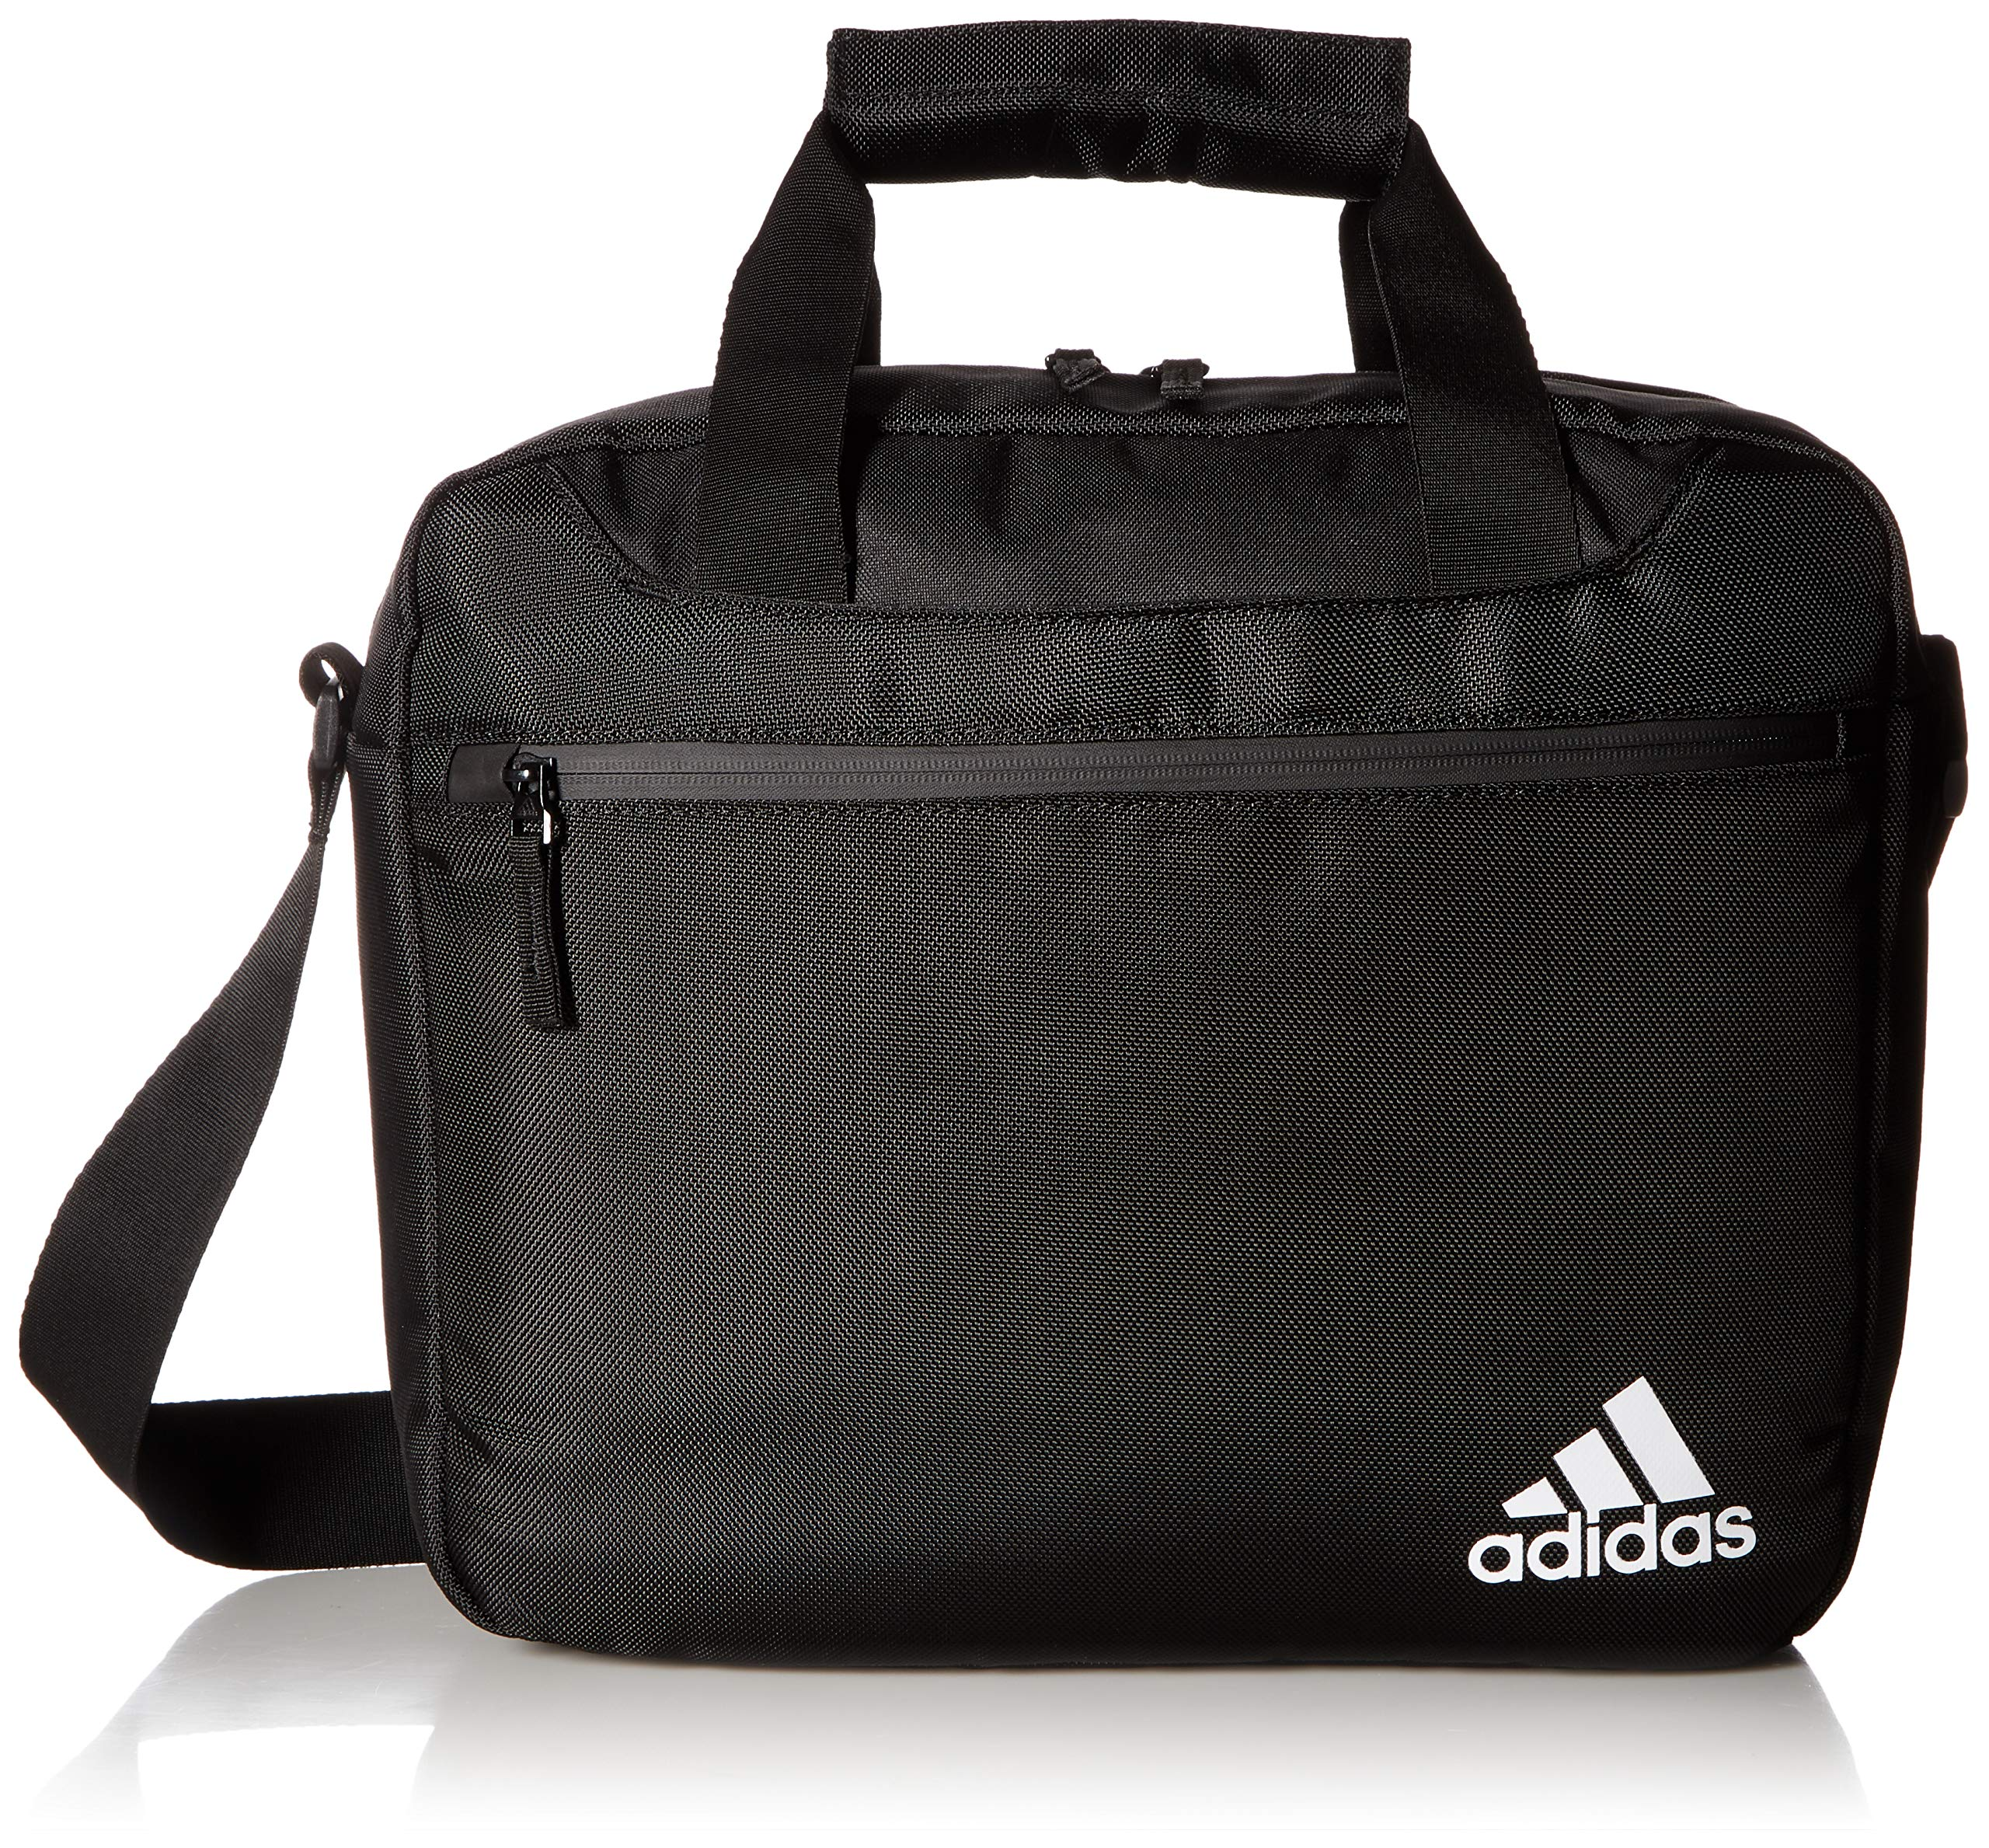 adidas Stadium messenger, Black, One Size